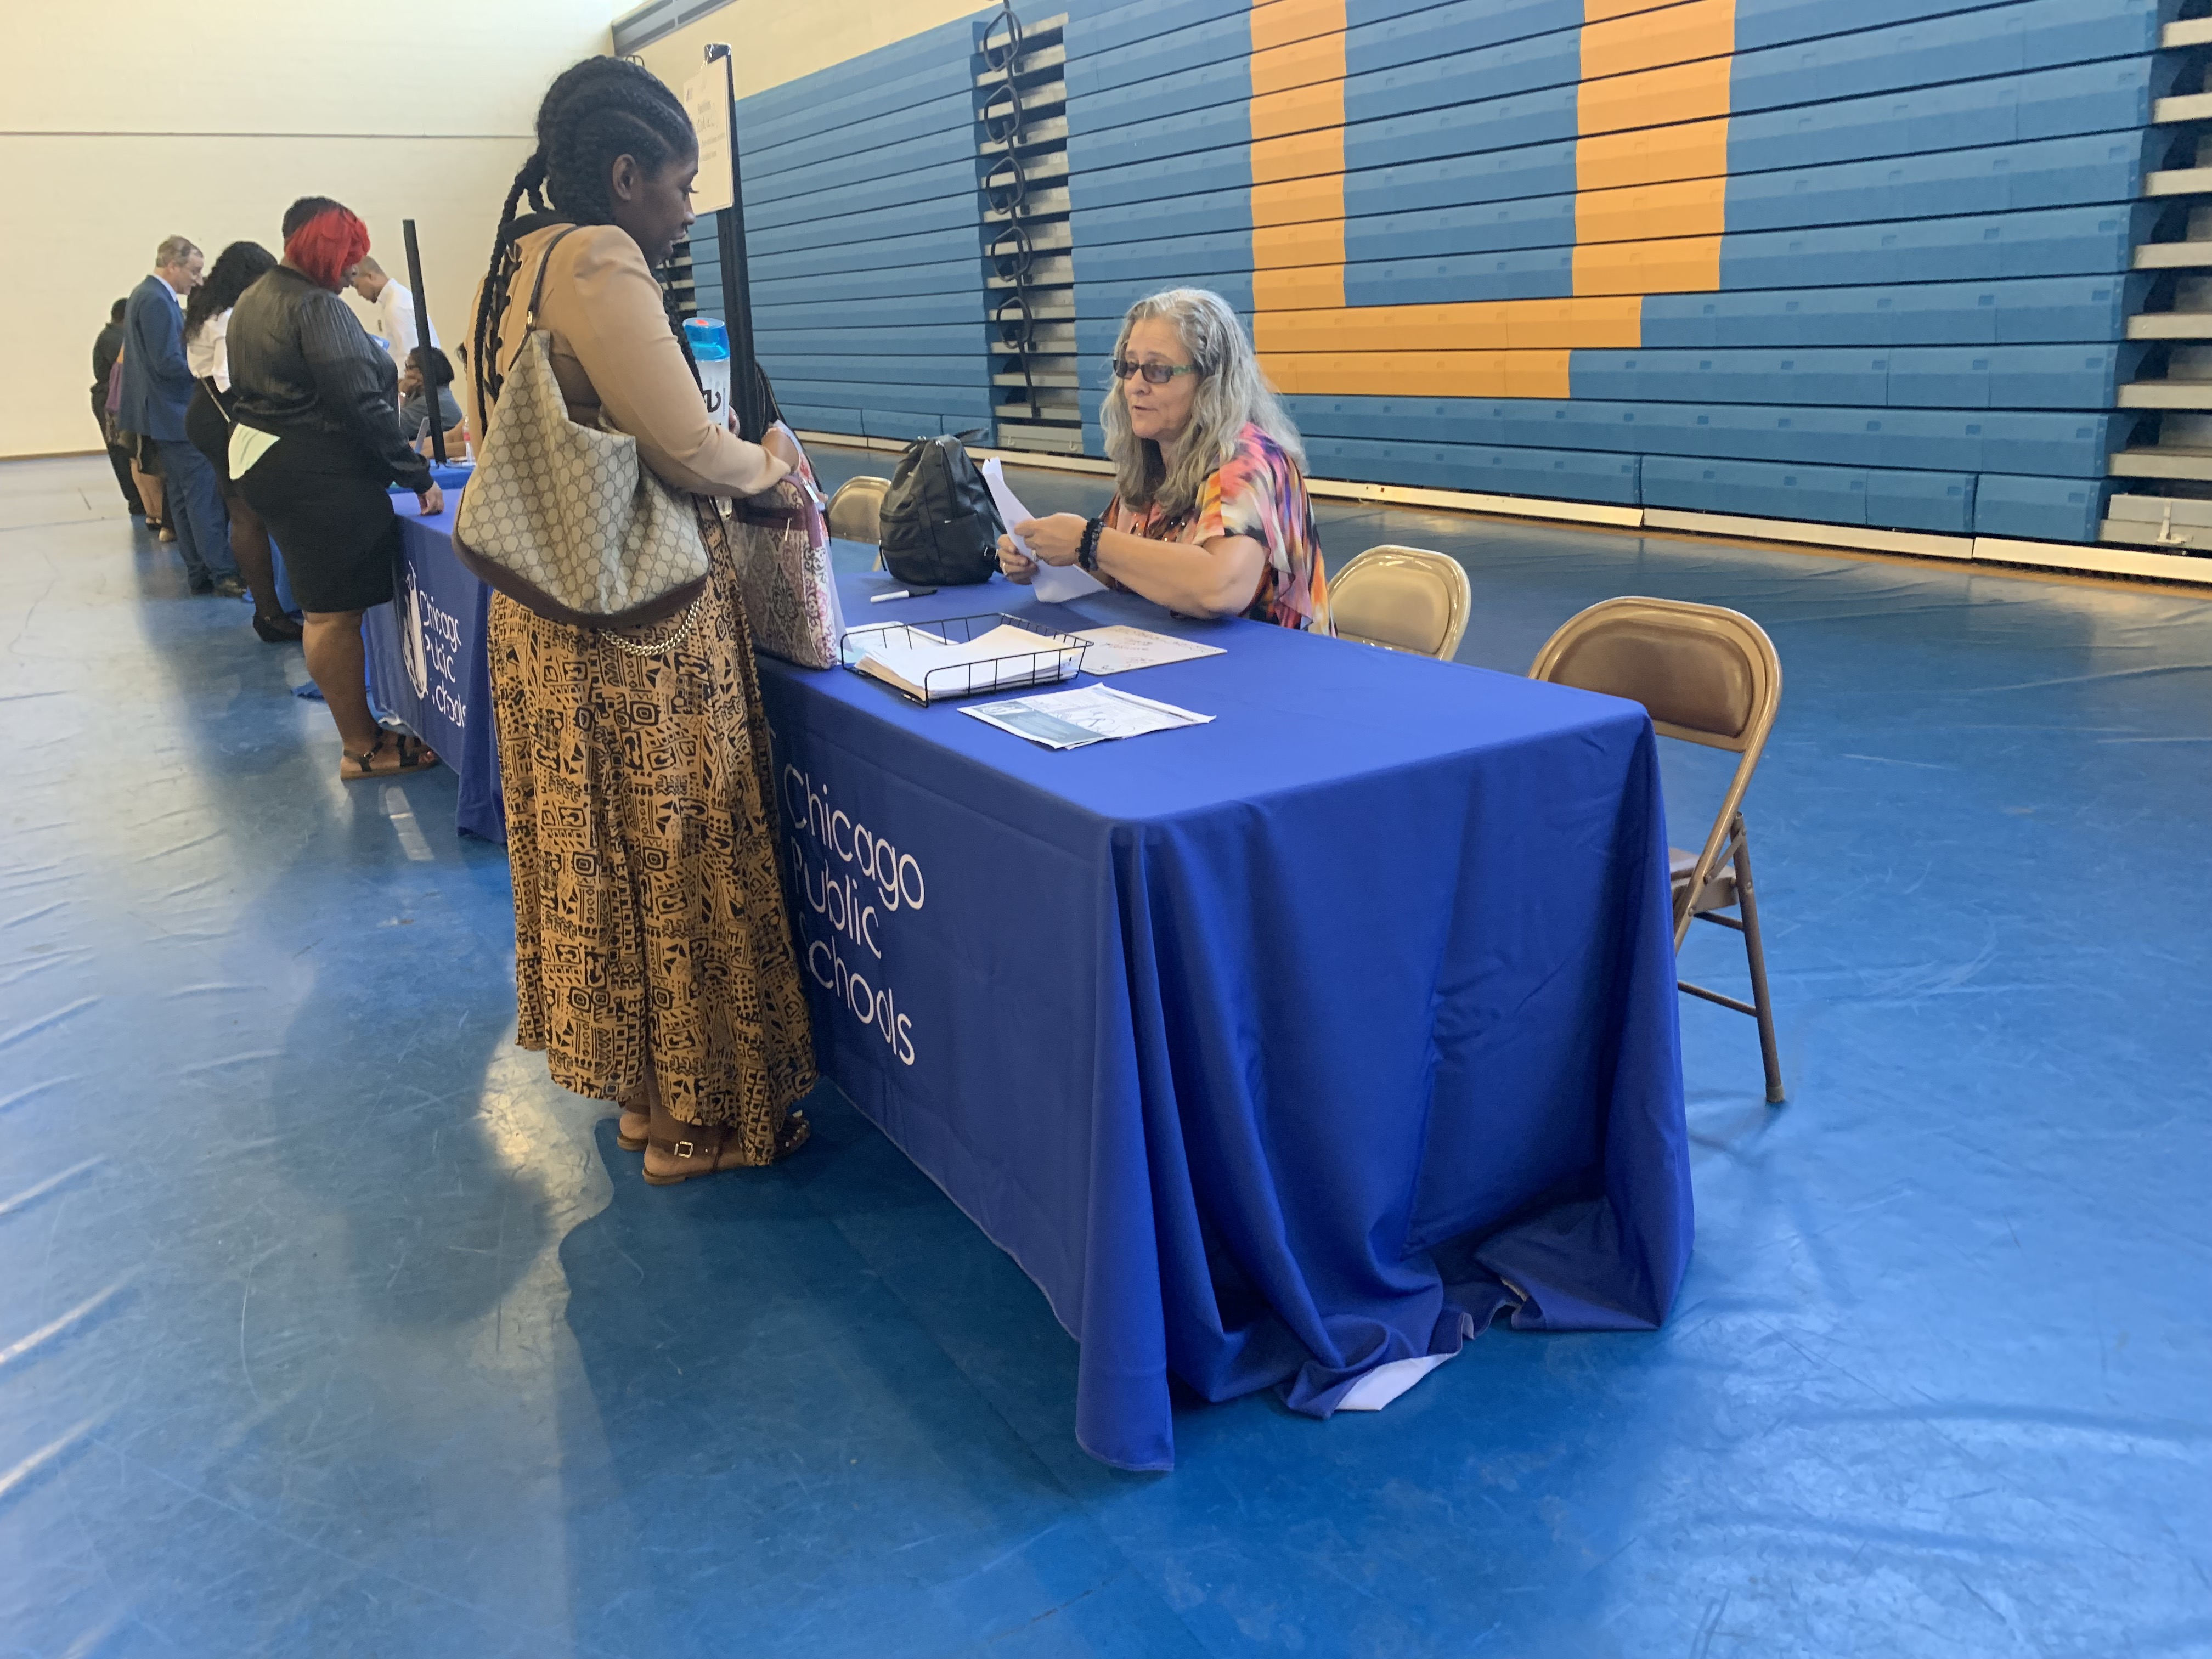 A district representative speaks to a candidate at the Chicago Public Schools job fair in the gymnasium of Richard J Daley College.